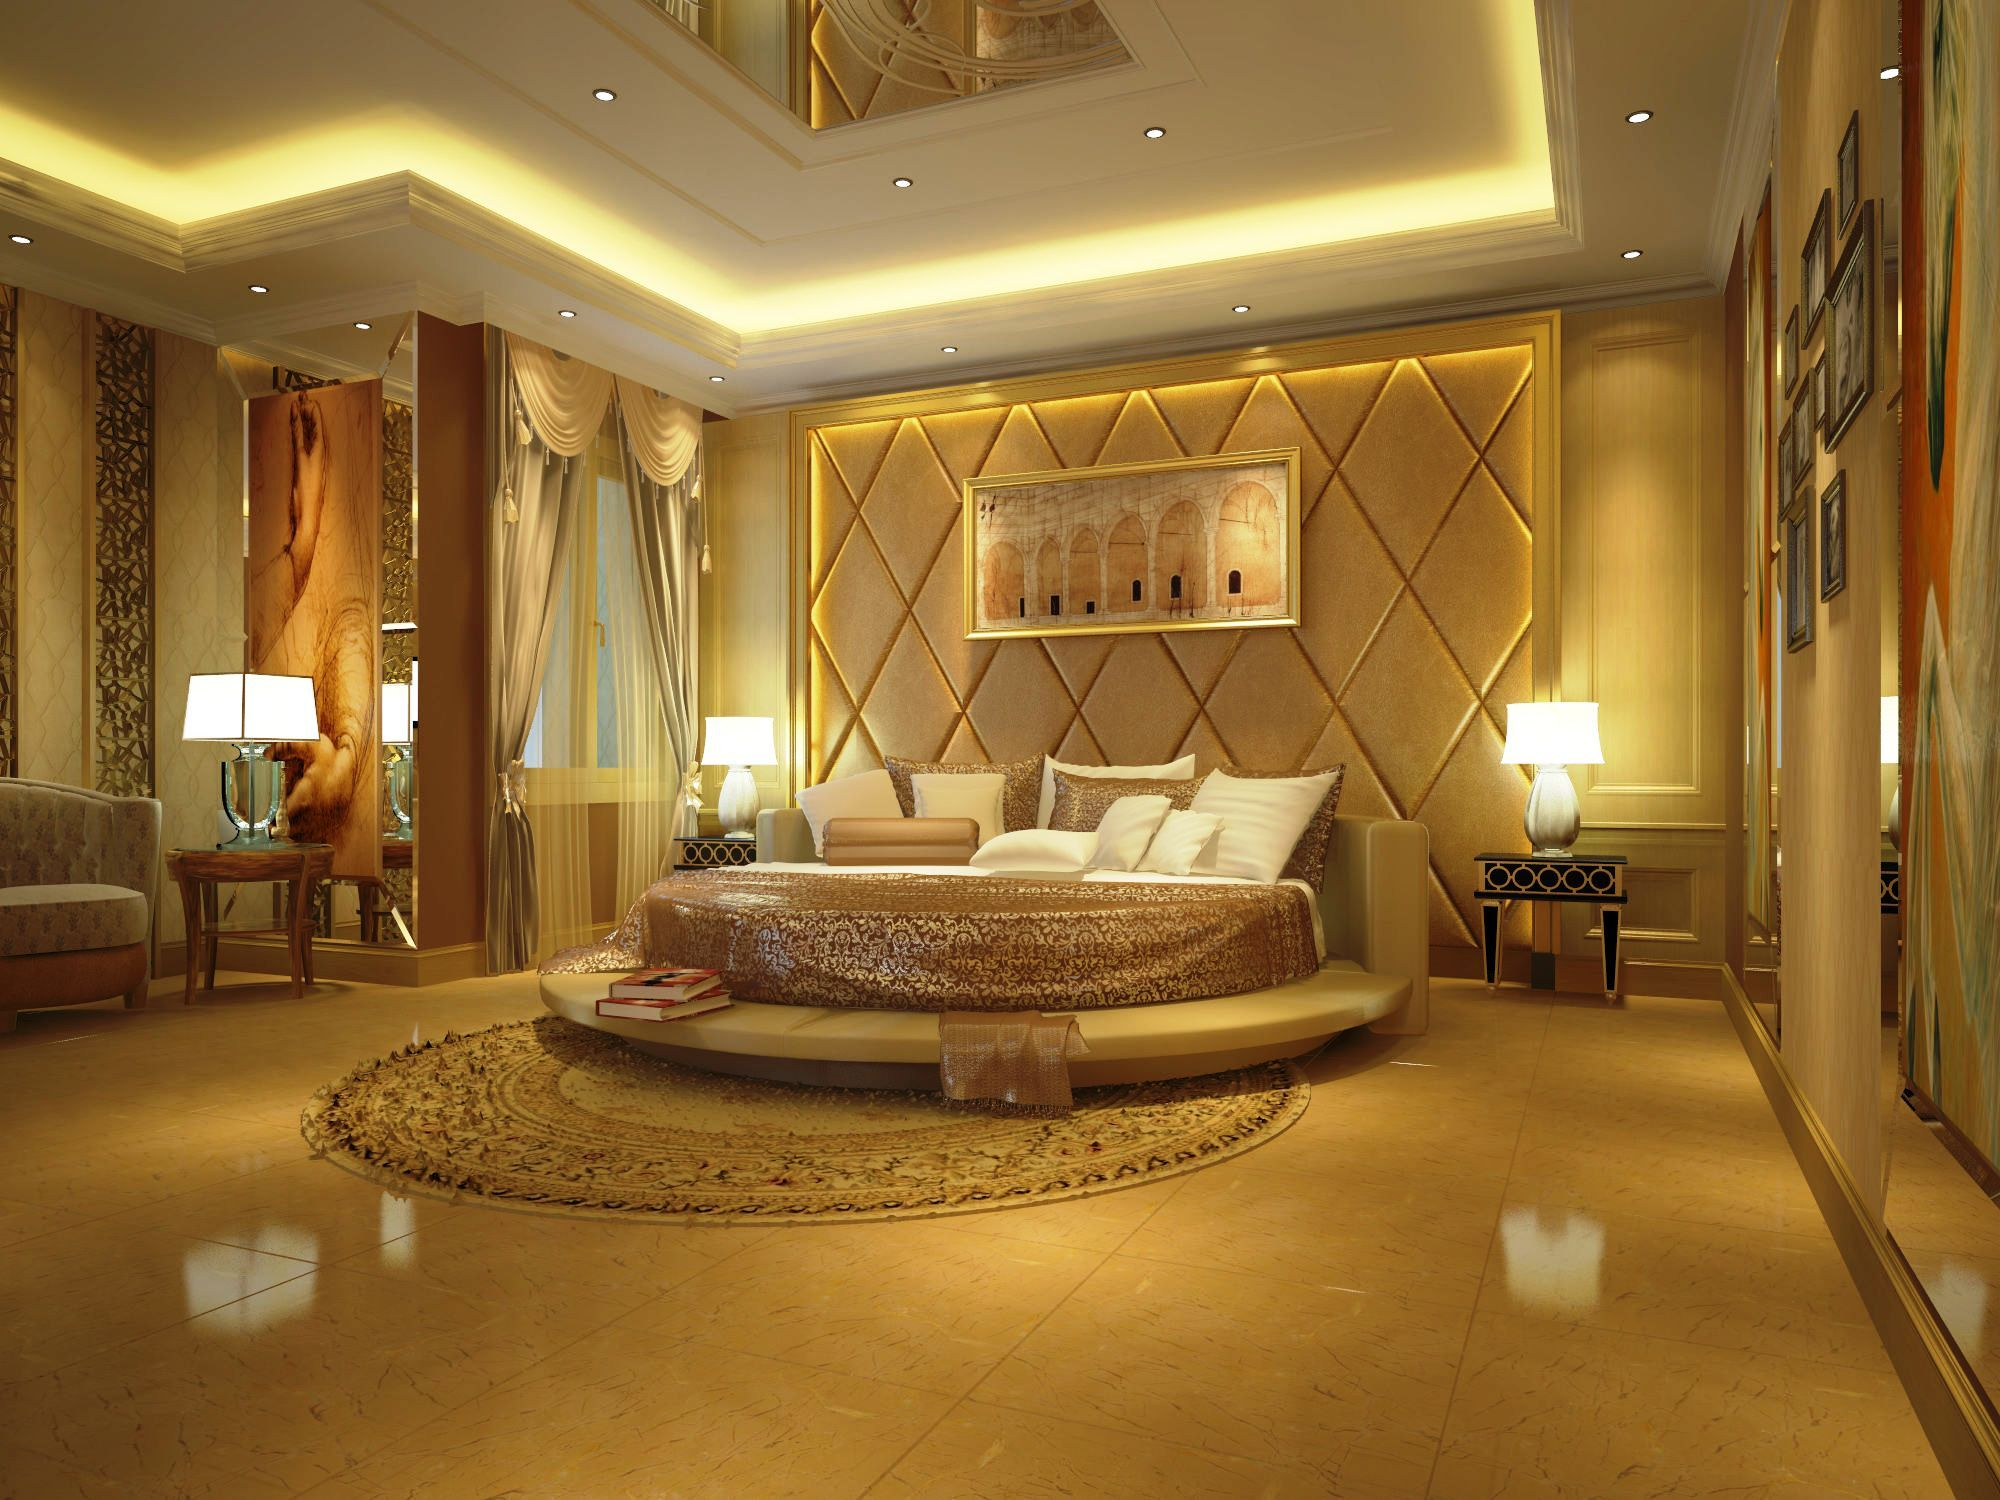 Luxury Bedrooms Interior Design Entrancing A Master Bedroom Fit For A King & Queendescription From Design Decoration